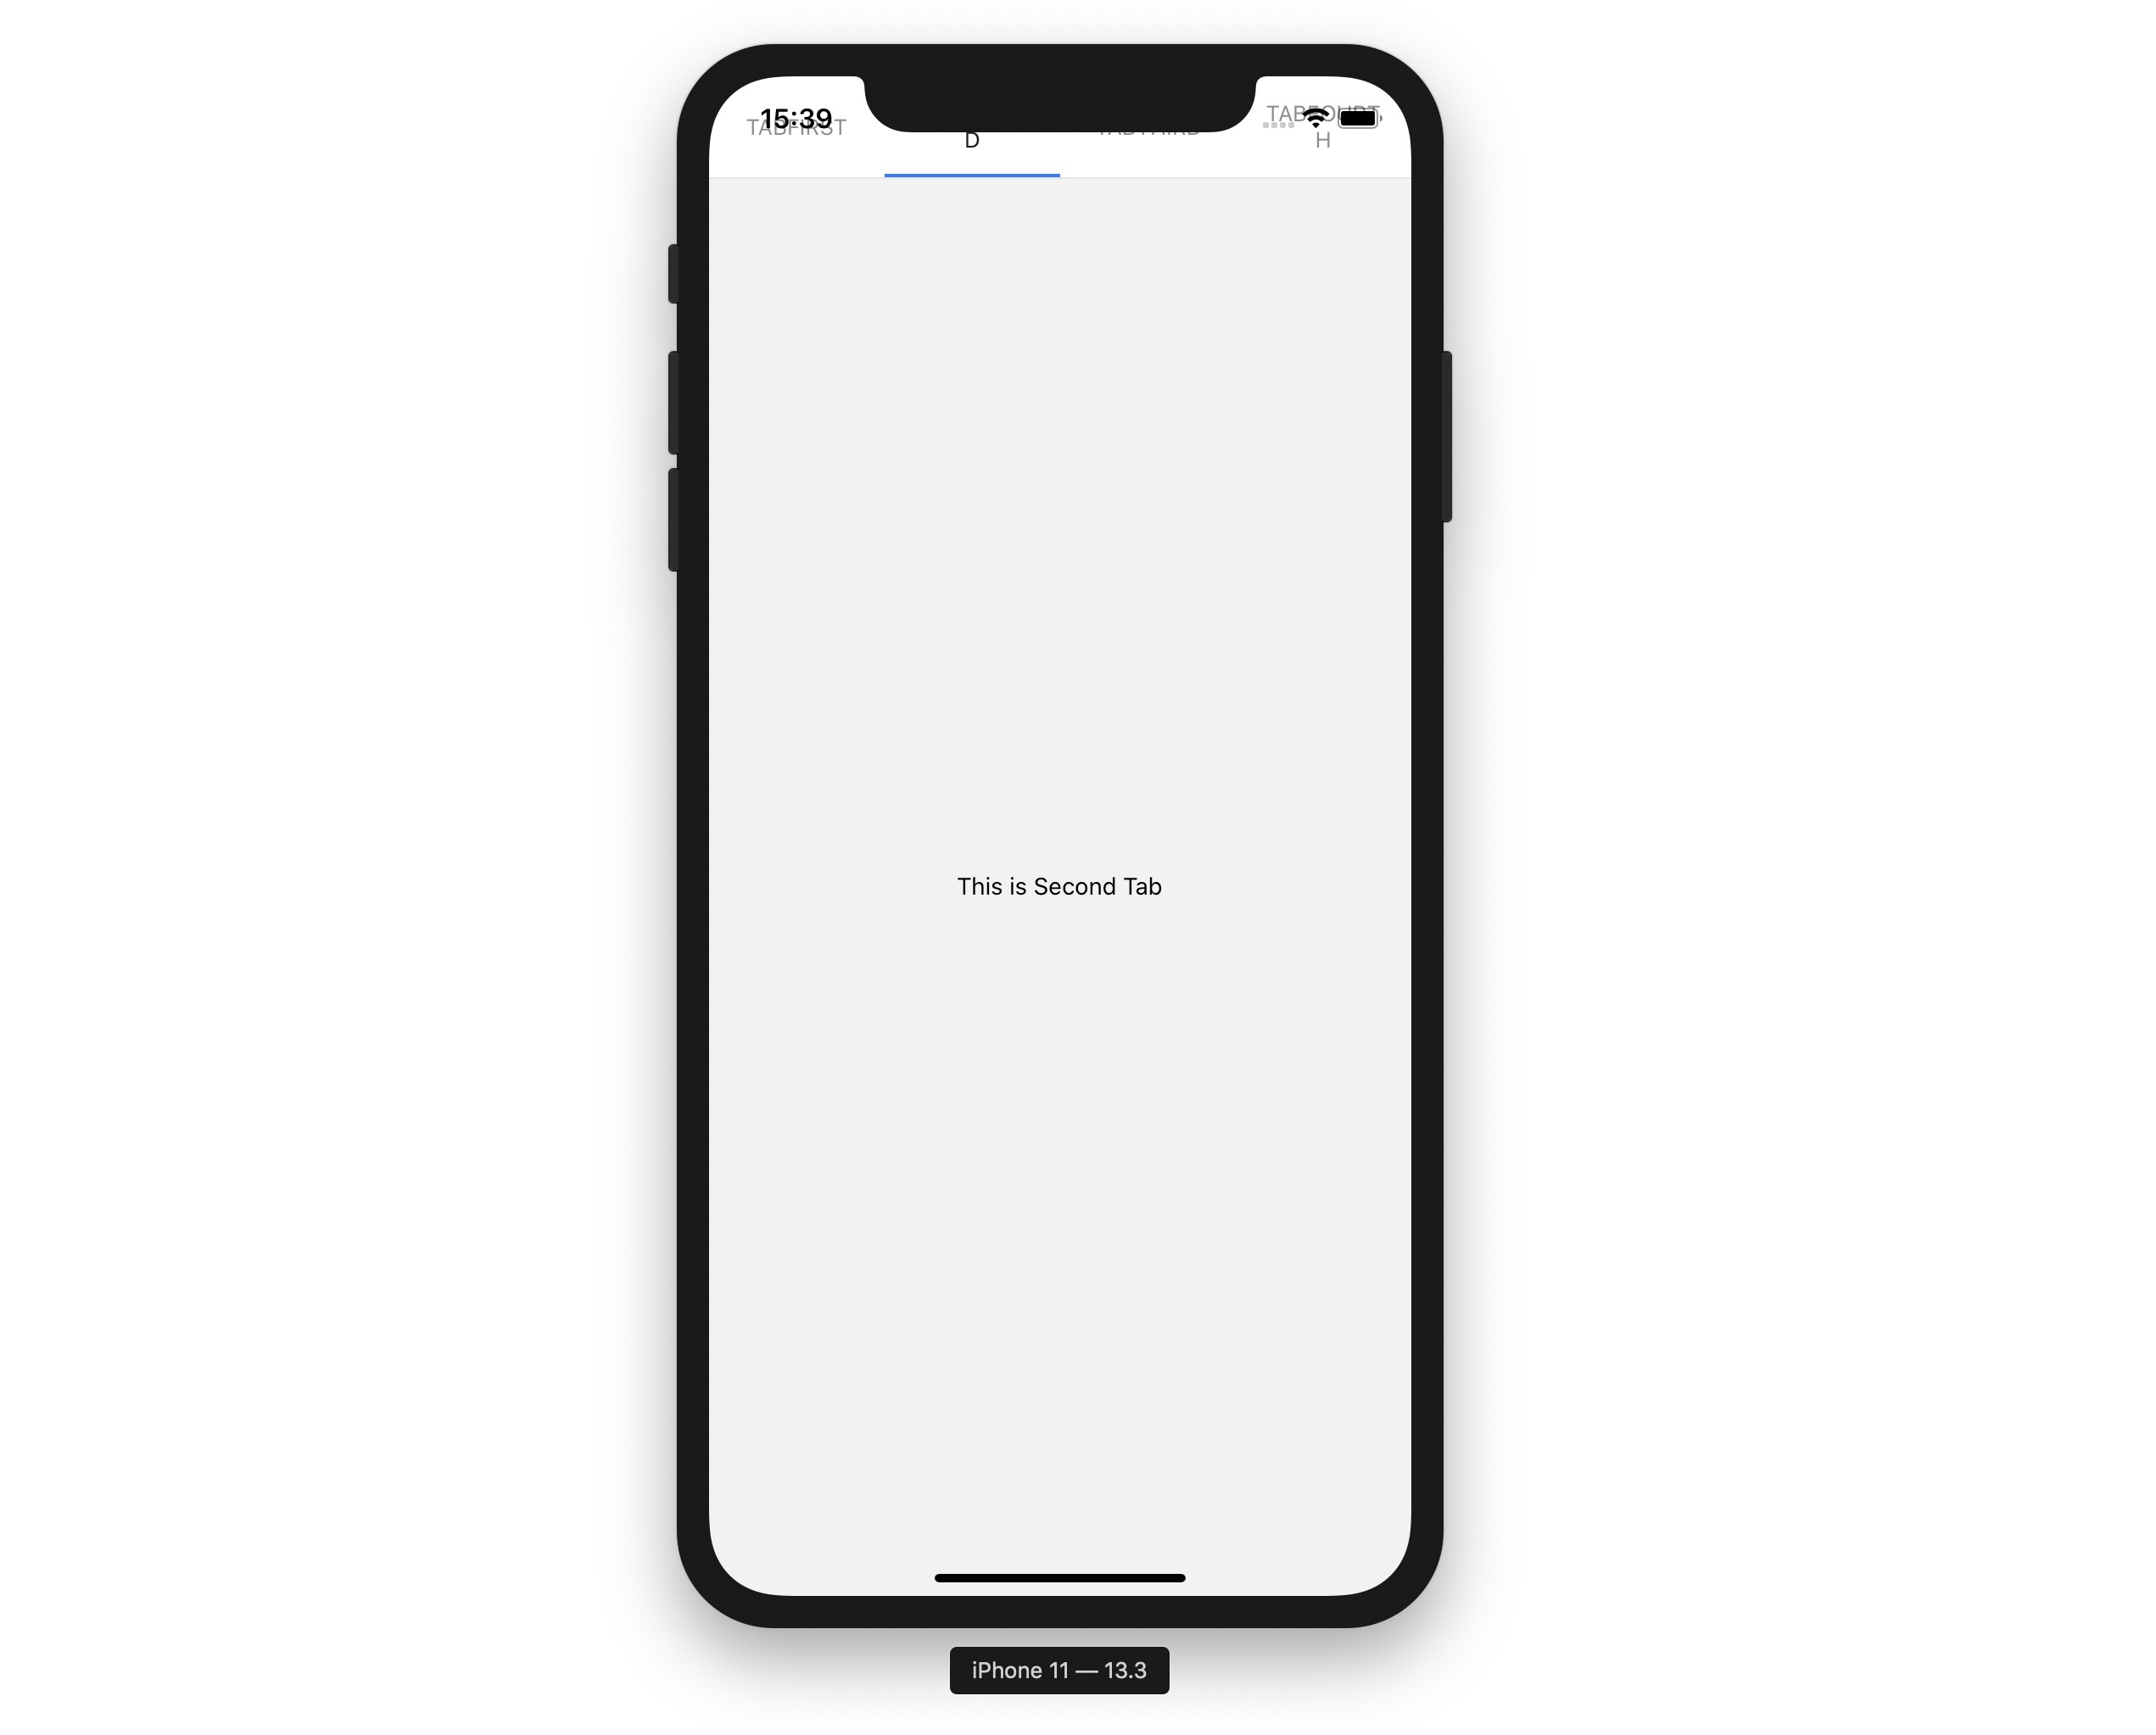 material top navigation issue in notch design